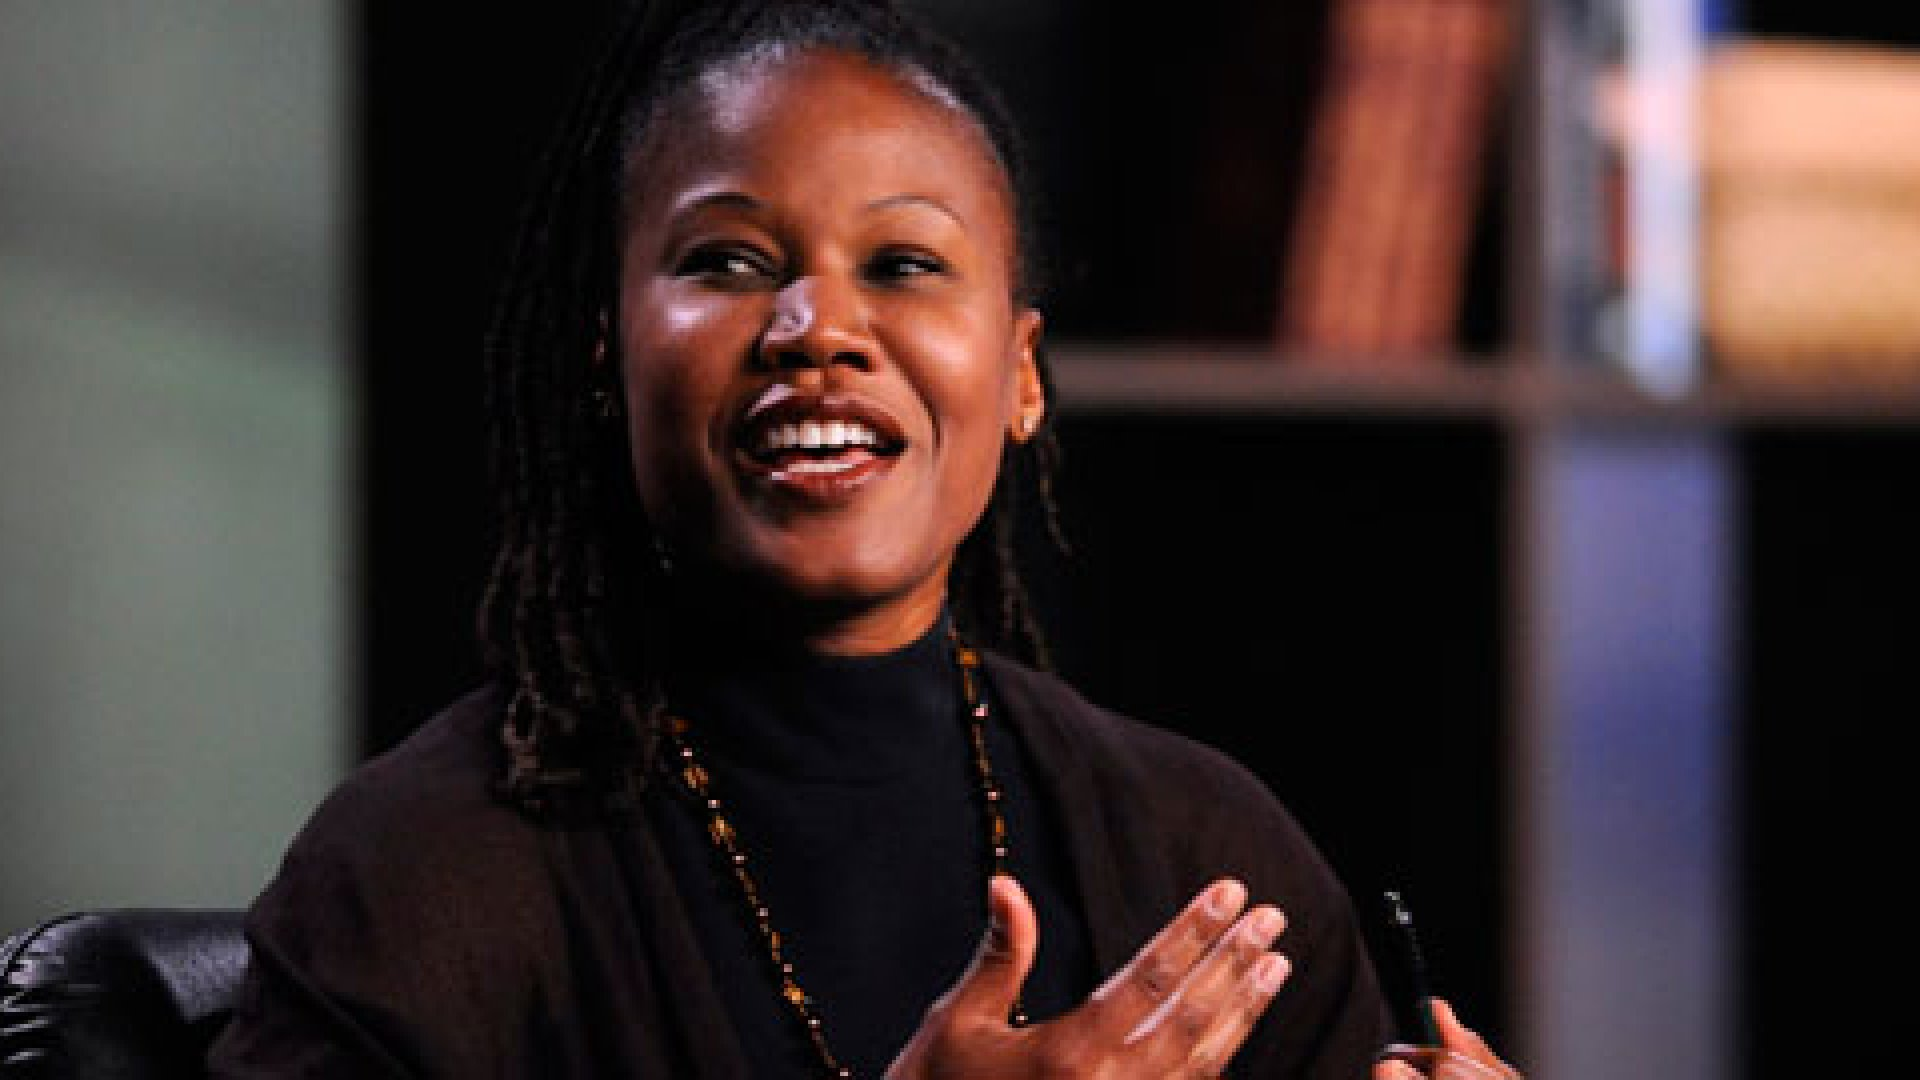 <strong>Nourishing our Cities:</strong> After stepping away from her nonprofit, Sustainable South Bronx, in 2008, Majora Carter has been seeking a new model for urban micro-agribusiness, with an eye toward healthier communities and satisfied investors.